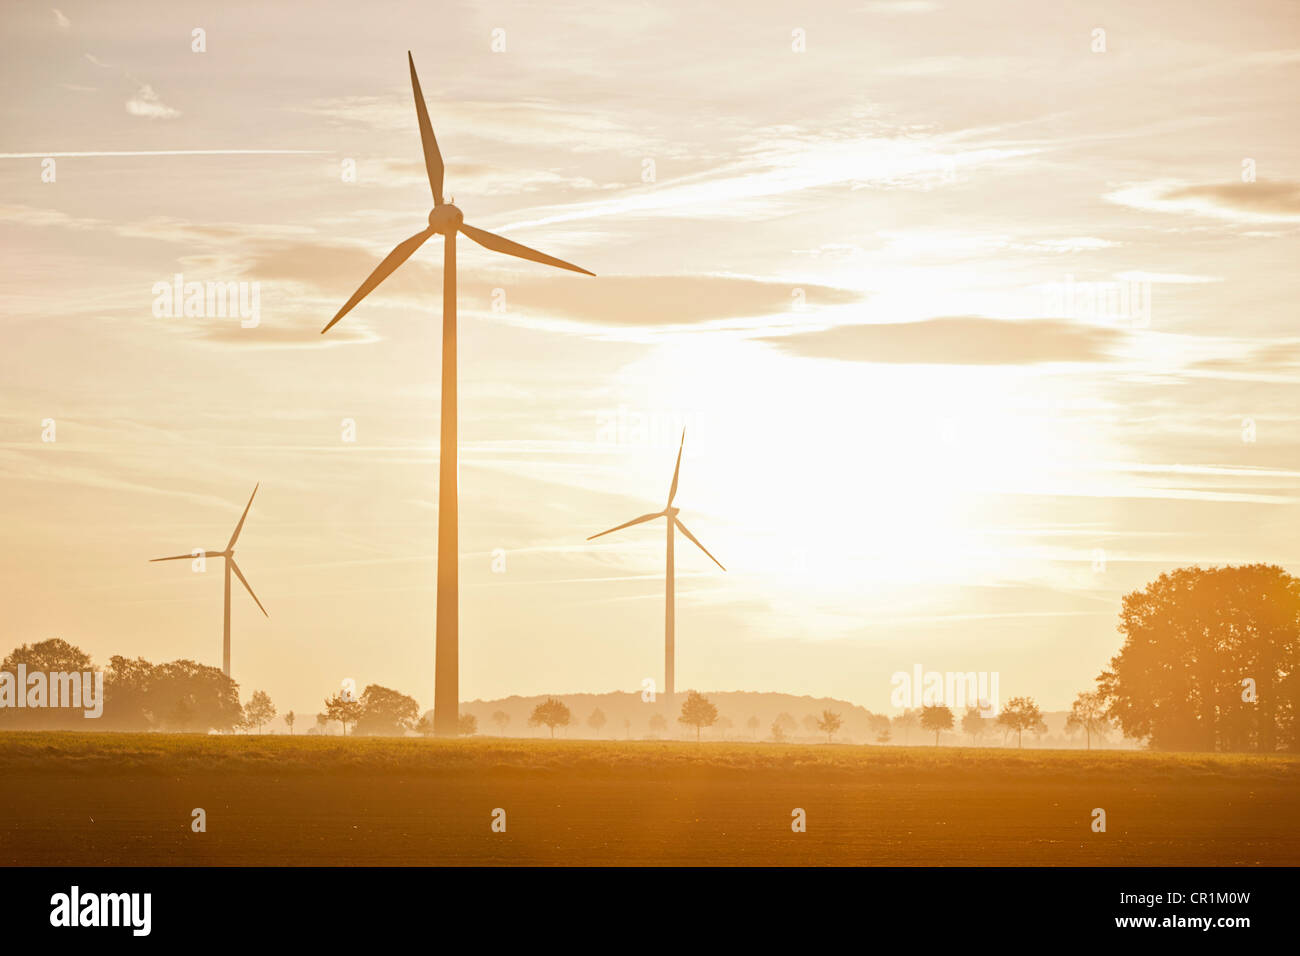 Wind turbines in rural landscape - Stock Image